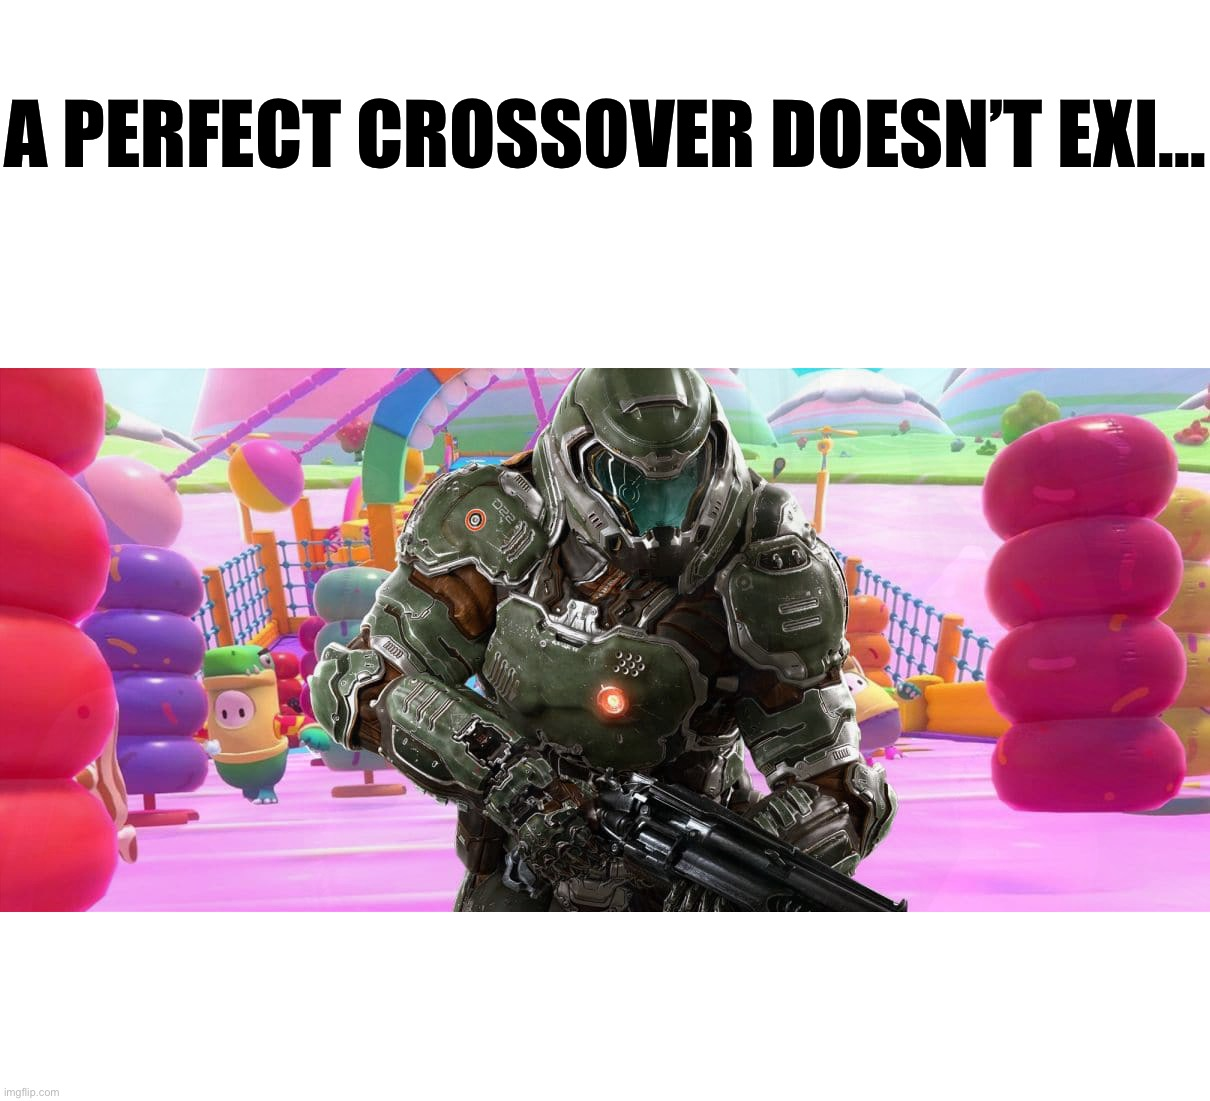 A PERFECT CROSSOVER DOESN'T EXI... Doom Slayer in Fall Guys is a perfect crossover for real. | image tagged in doom,fall guys,demon slayer,video games,crossover,funny memes | made w/ Imgflip meme maker